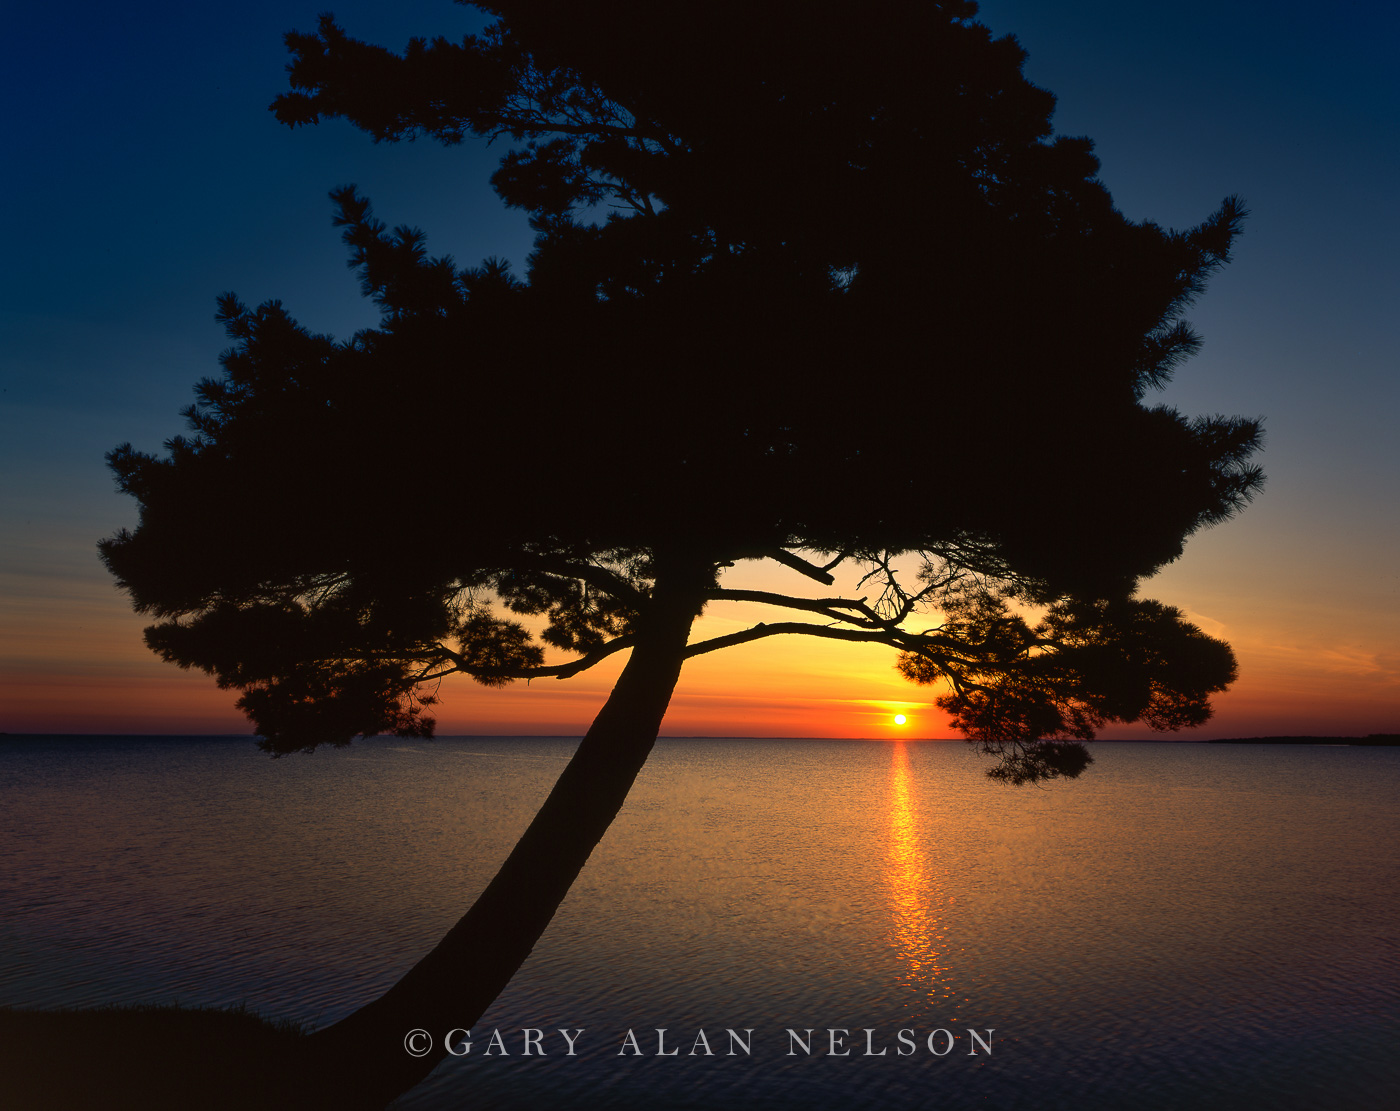 minnesota,silhouette,dawn, mille lacs lake, lake, pine, photo